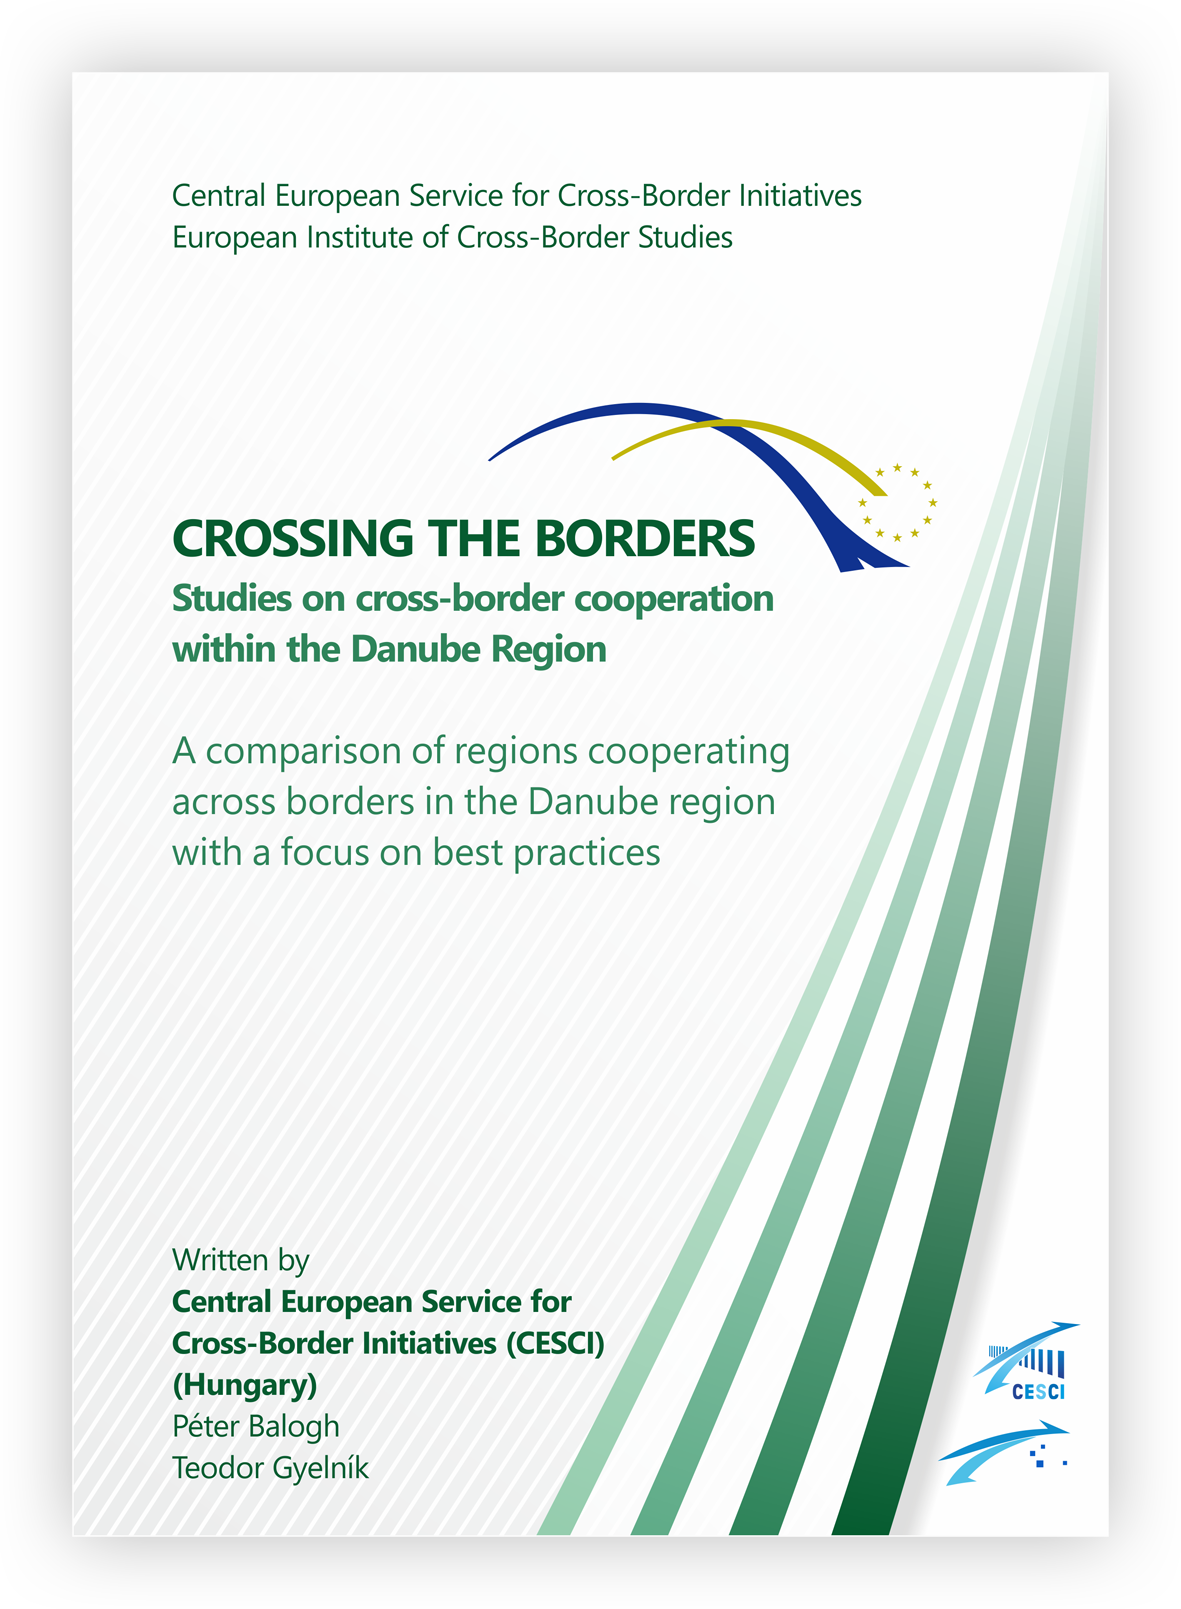 A comparison of regions cooperating across borders in the Danube region with a focus on best practices